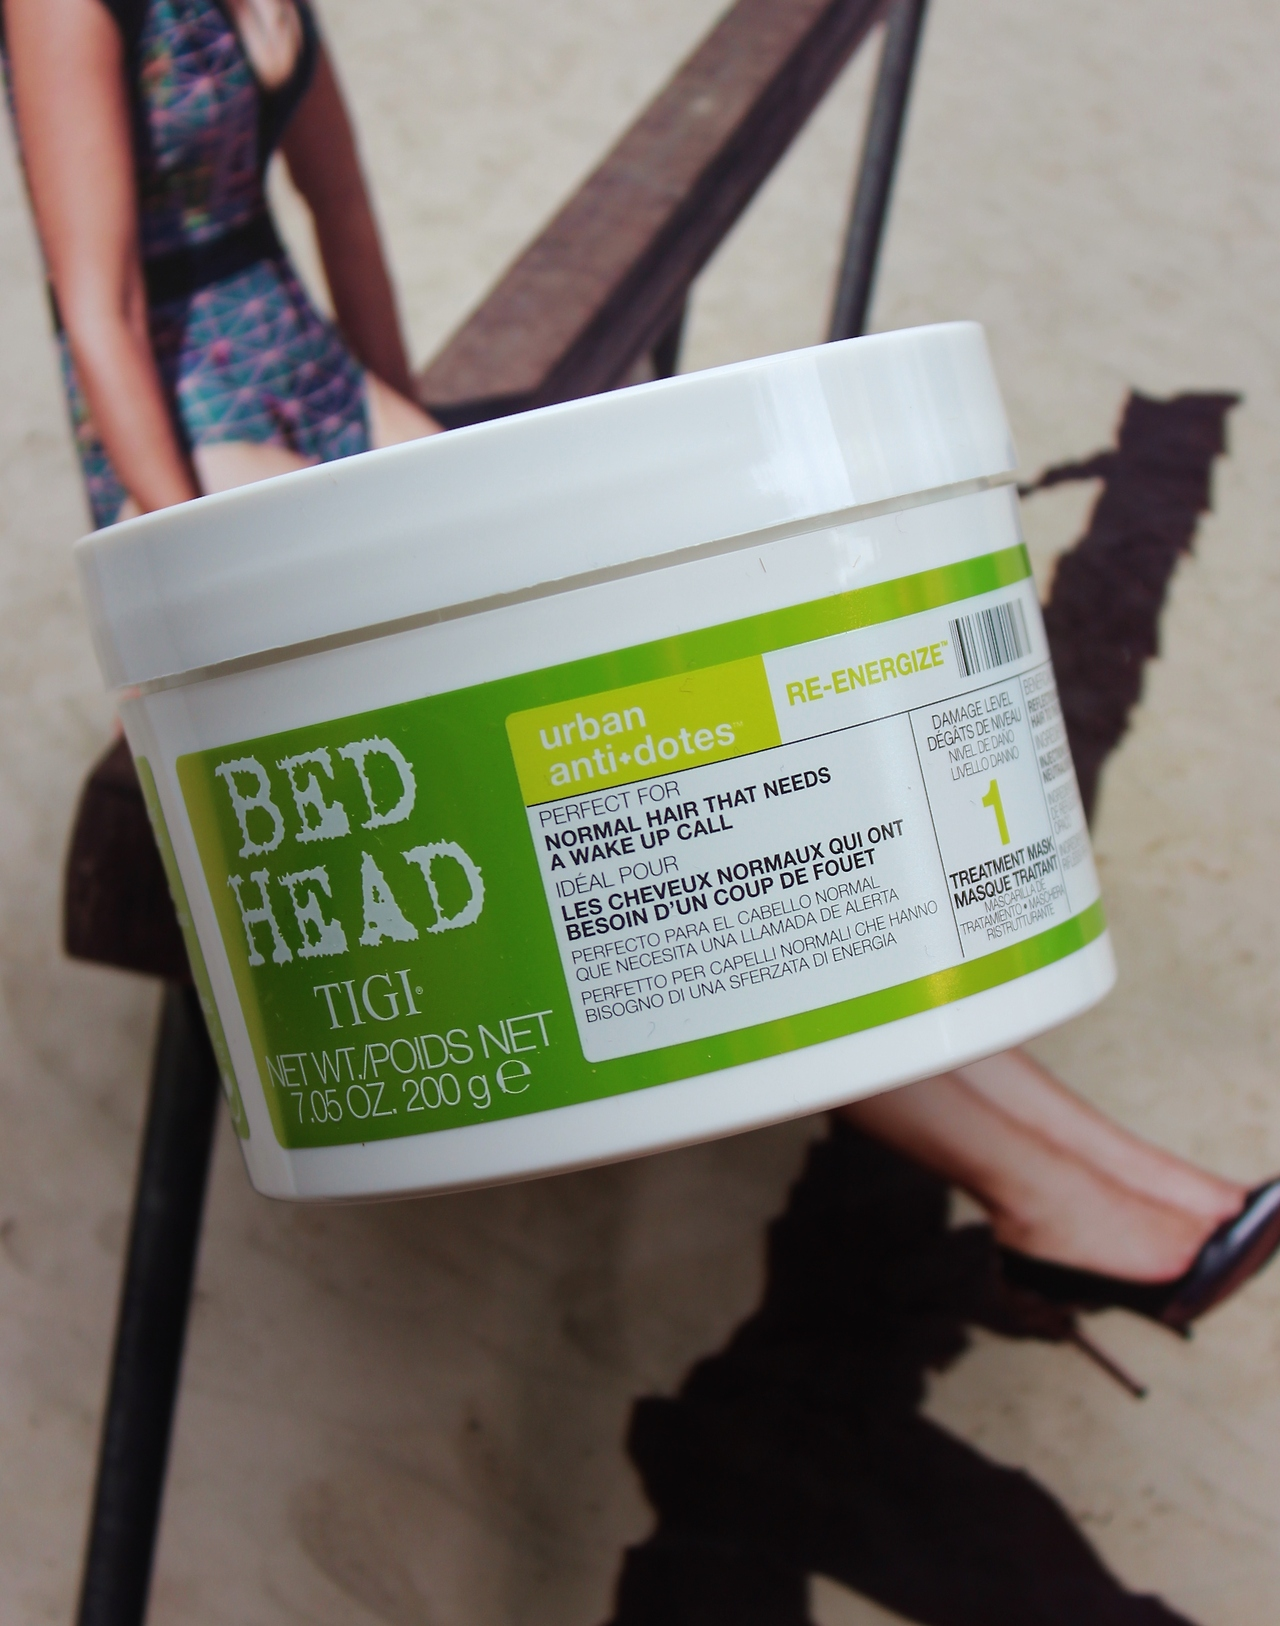 bedhead re-energize, hair mask,